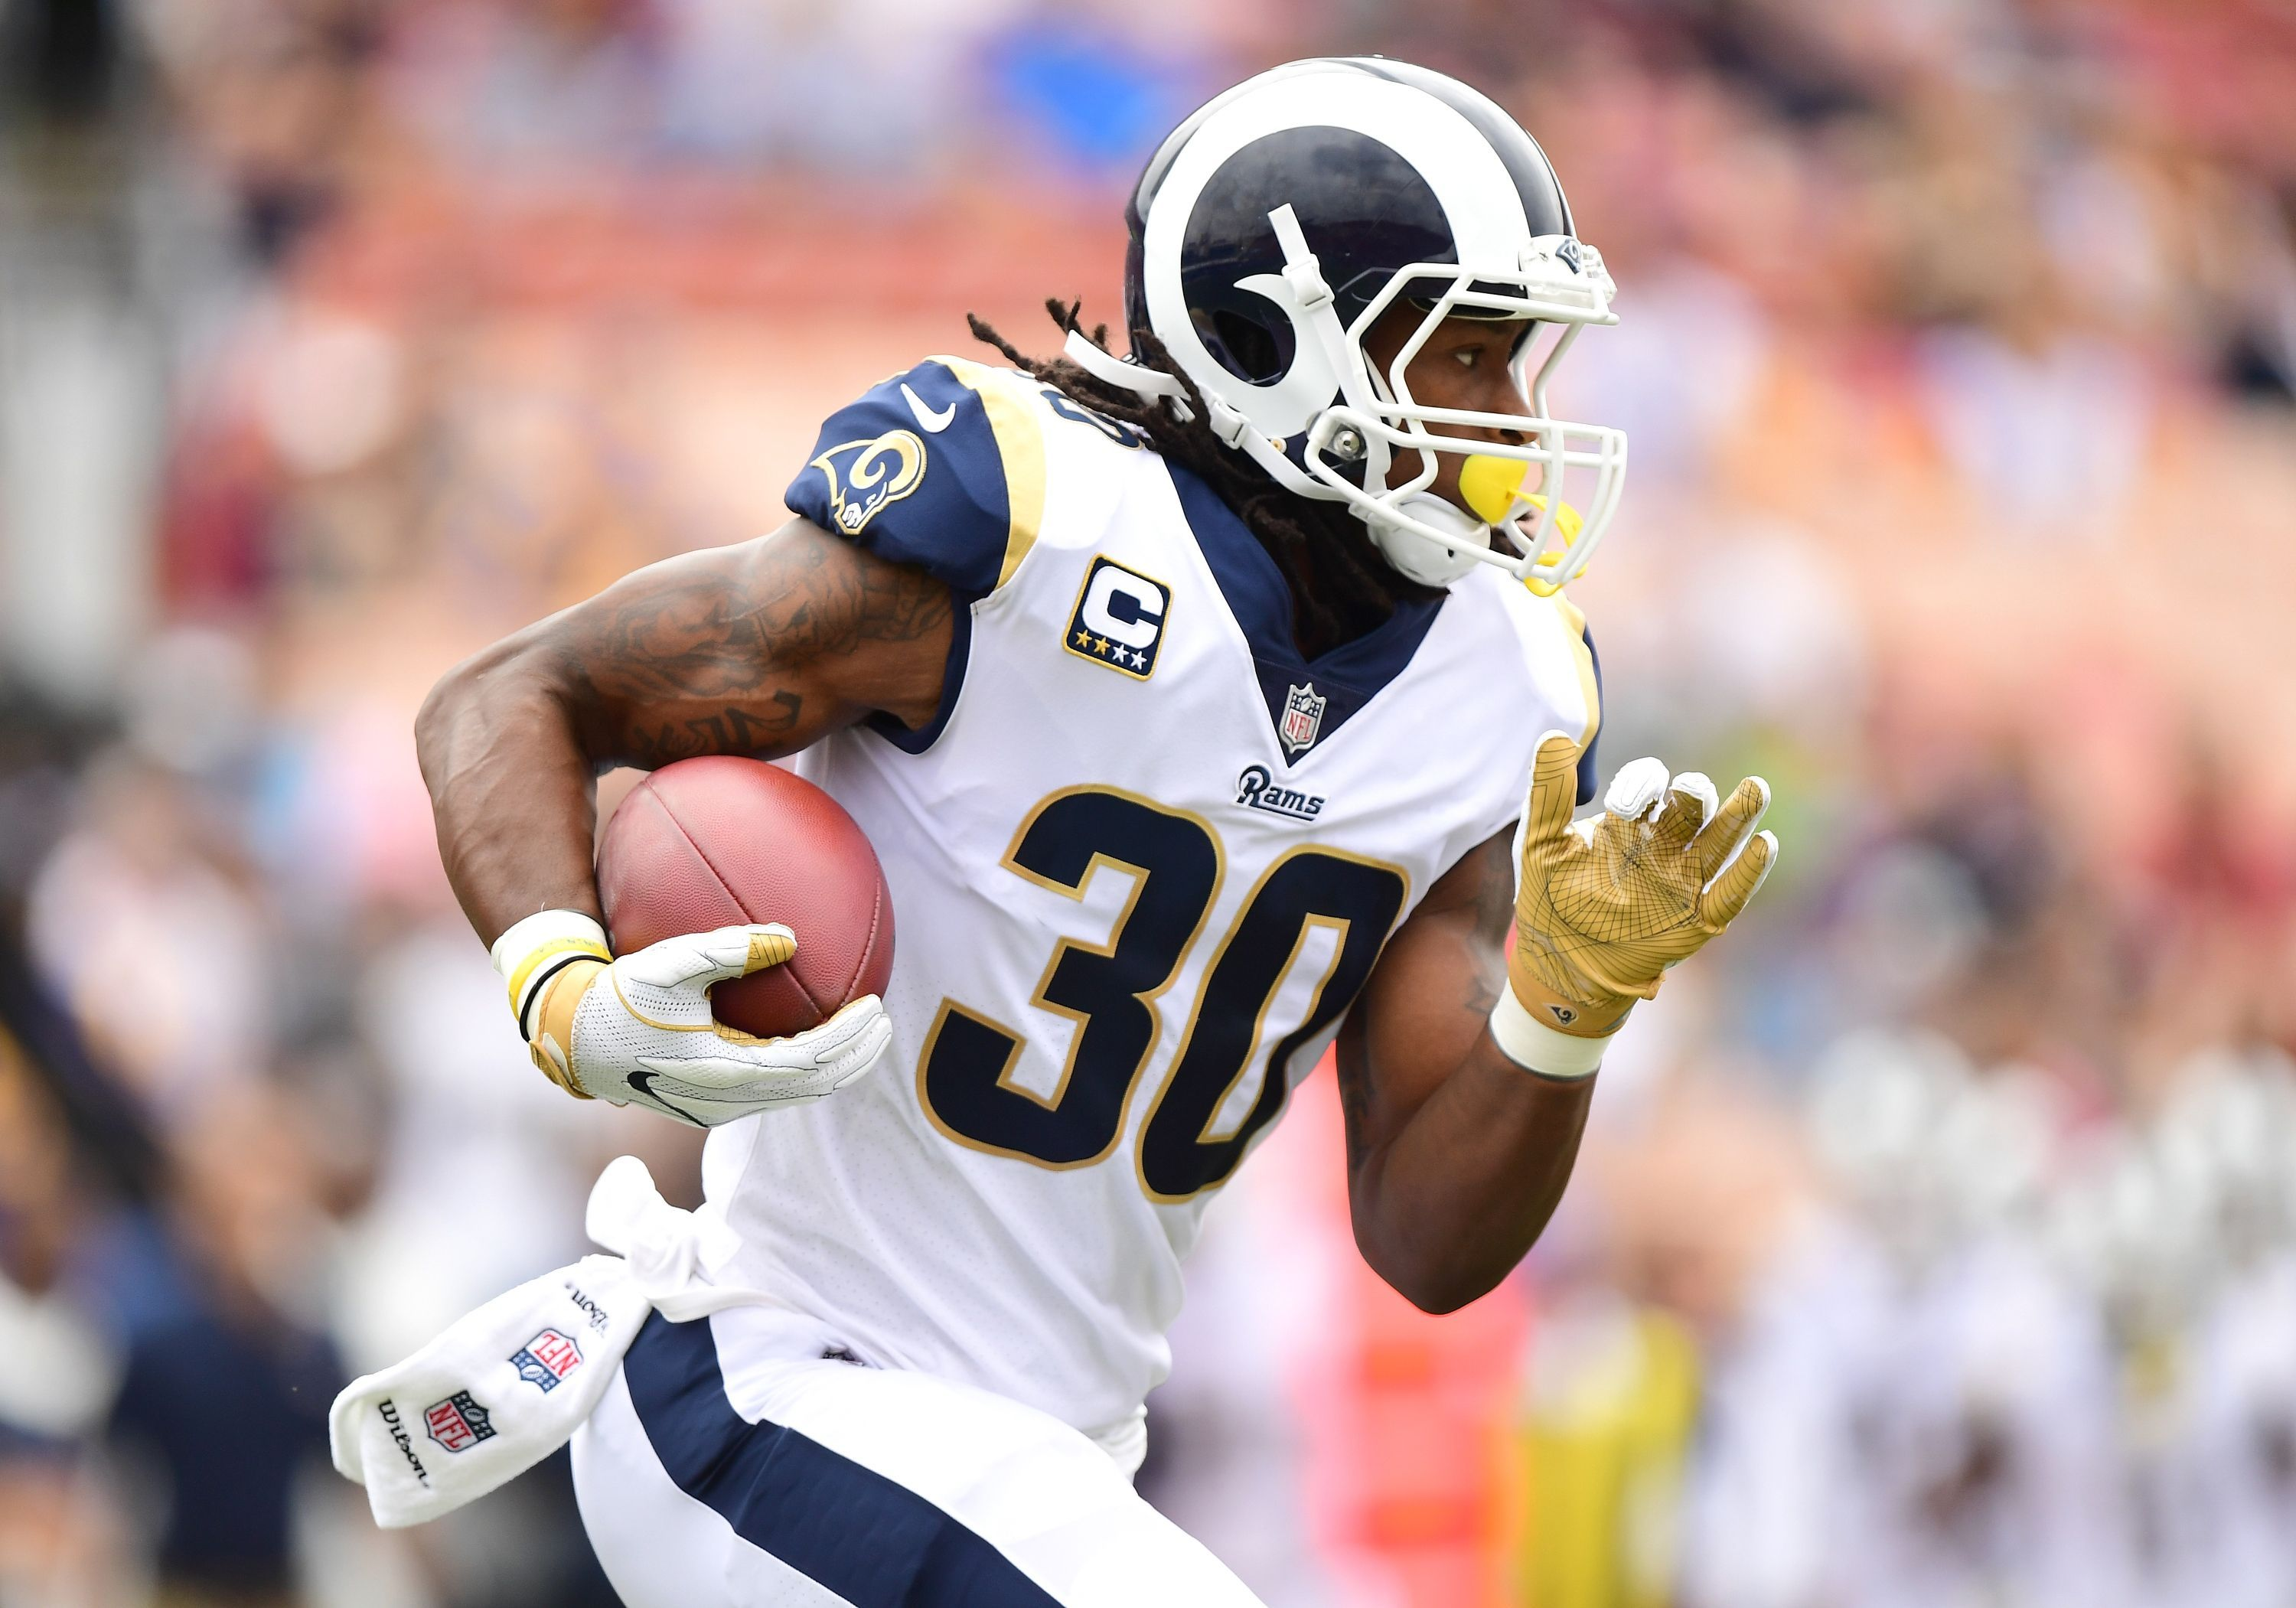 Todd Gurley Hurdles Defender Before Reaching Out For Touchdown Zeichnungen